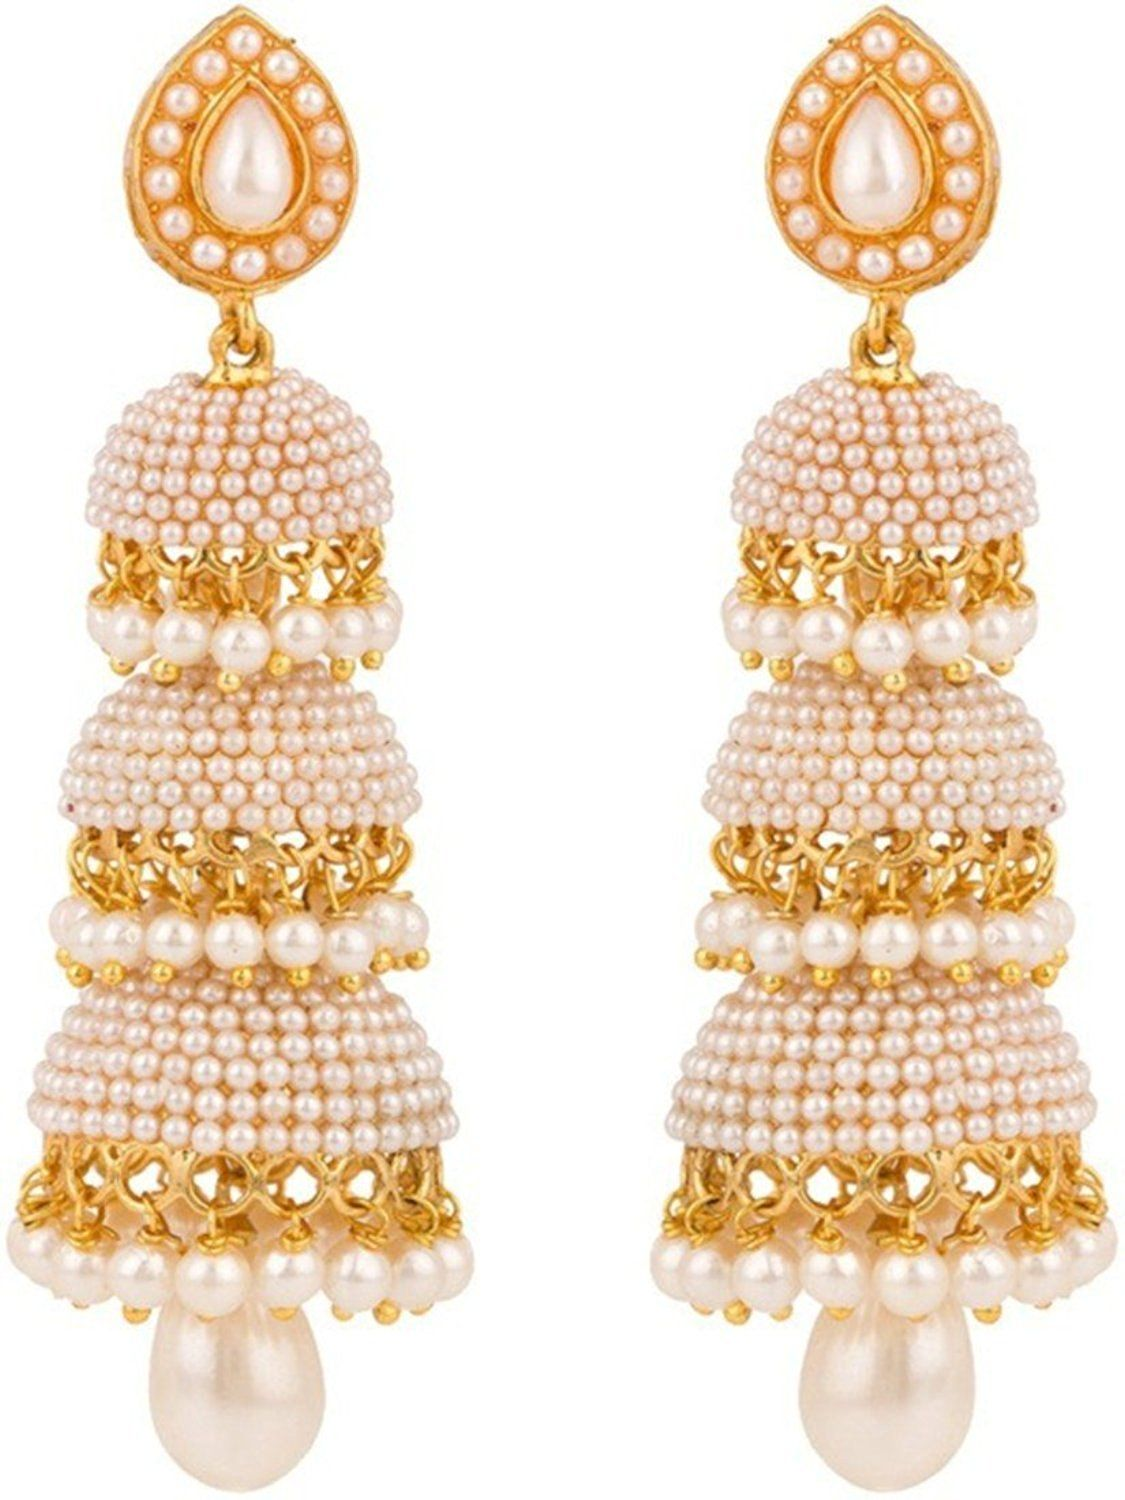 Pearl Stylish earrings for stylish girls recommend dress in autumn in 2019